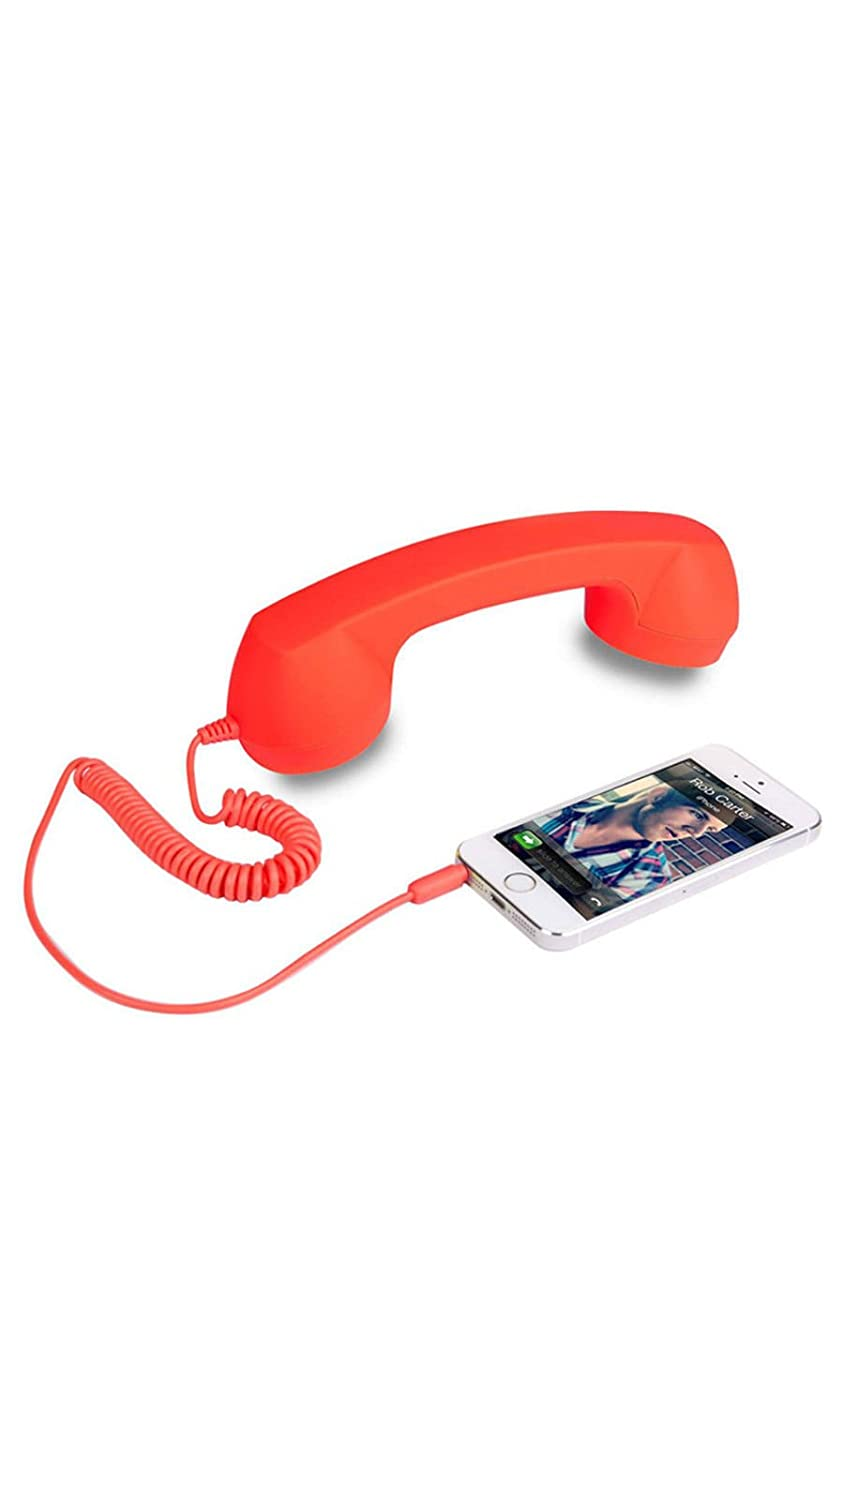 Funny Gifts - Retro Style Handset for Mobile